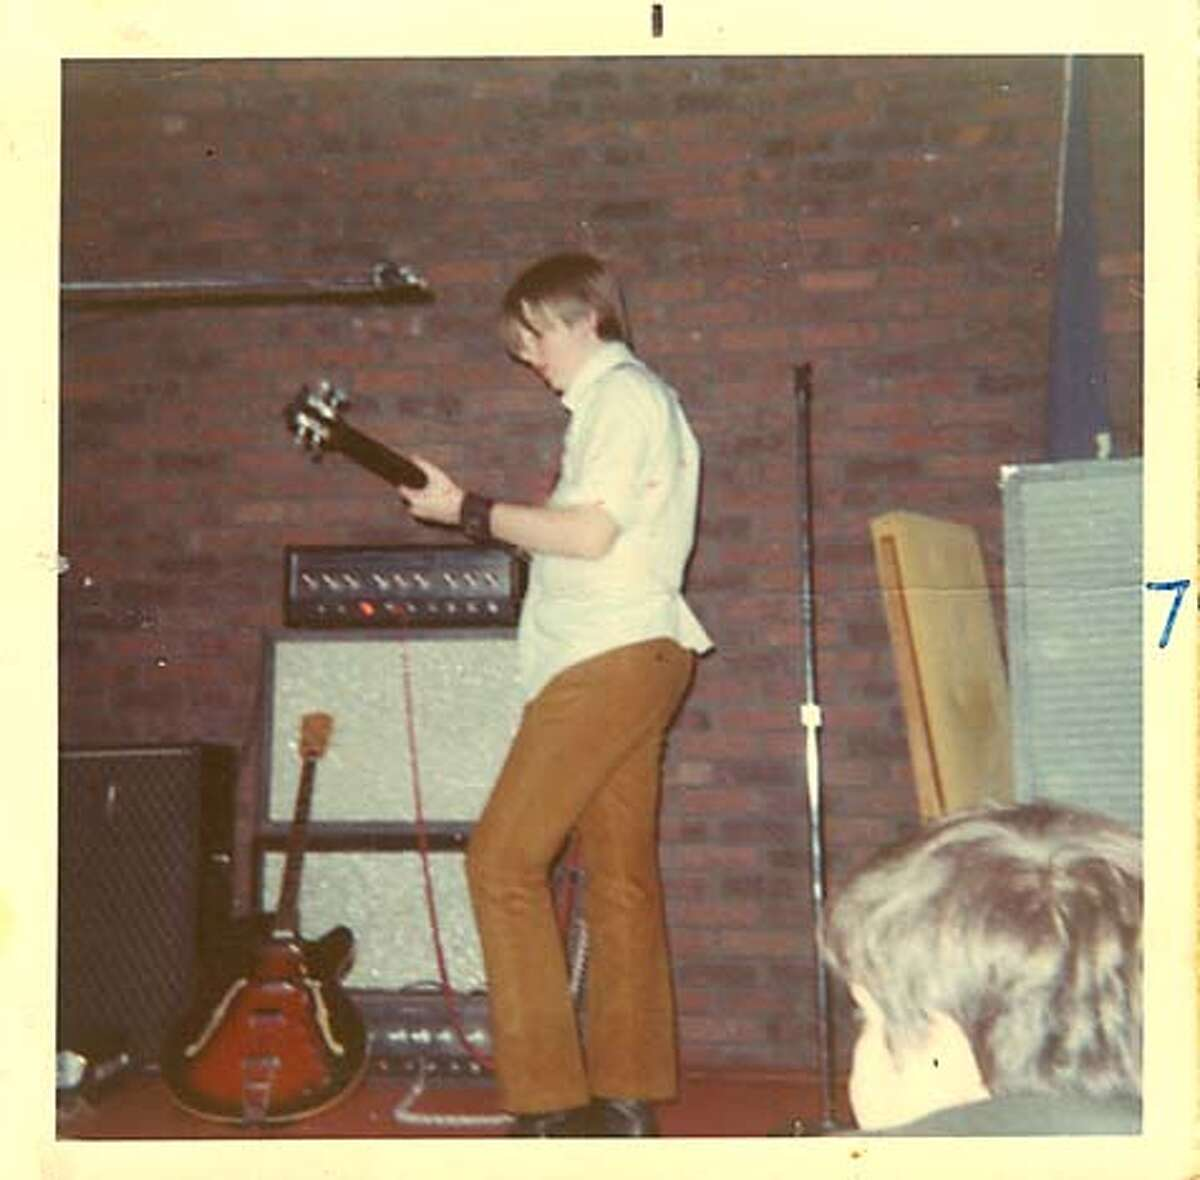 1968: At 14, Bennett was lead singer and guitarist for Geometric Progression, his garage band in New York. Photo courtesy of Fran Bennett